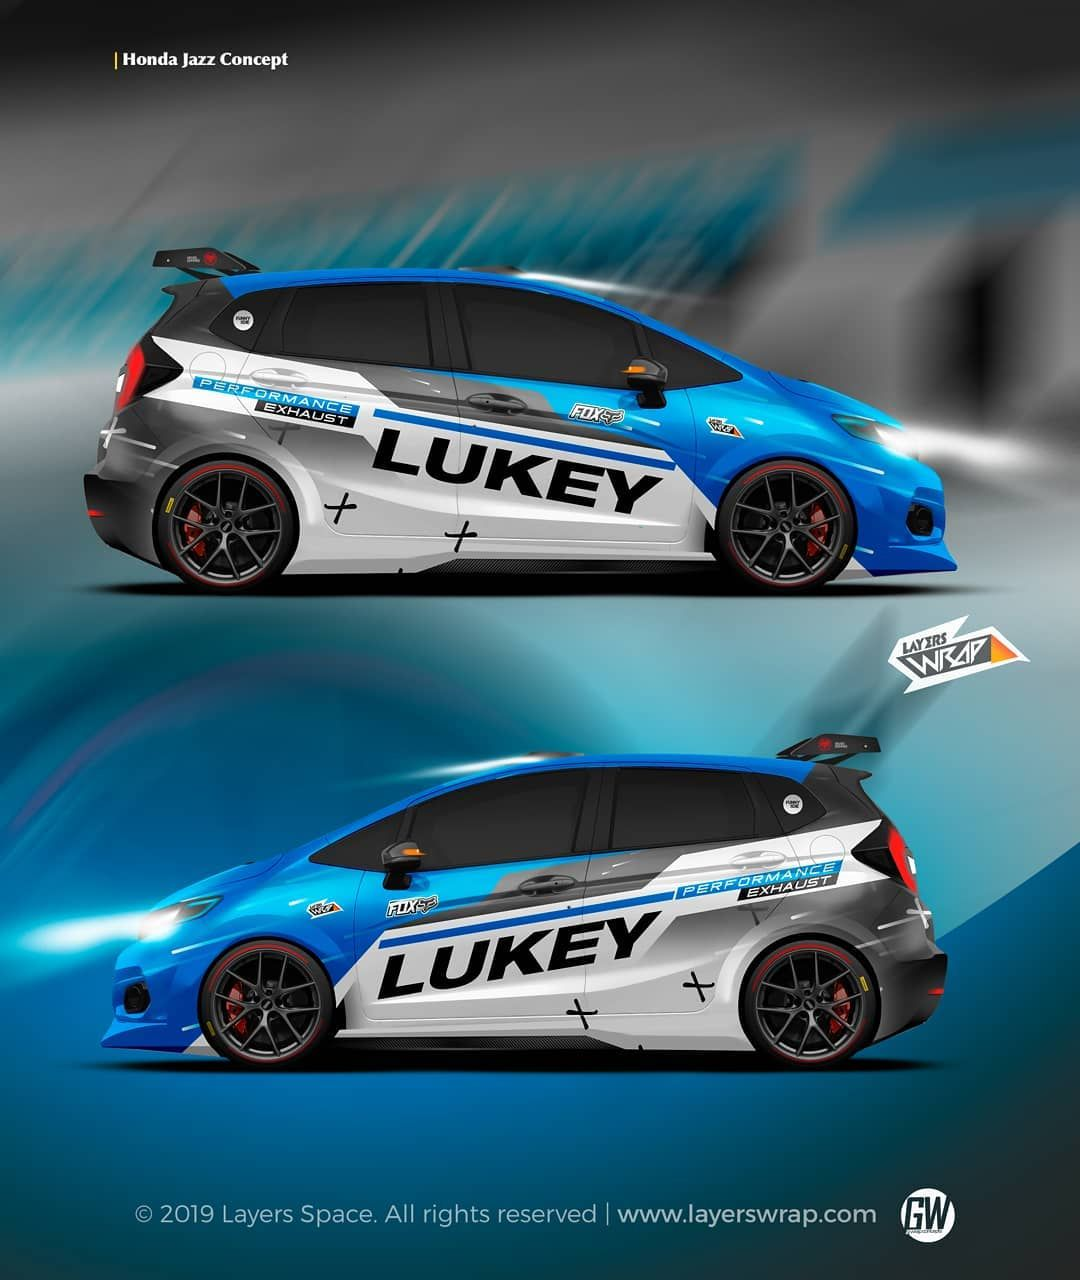 Designs That Go Beyond Expectation We Custom Wrap Design And Get The Wrap Project Into Reality This Is A Concept Design Mobil Impian Modifikasi Mobil Mobil [ 1280 x 1080 Pixel ]